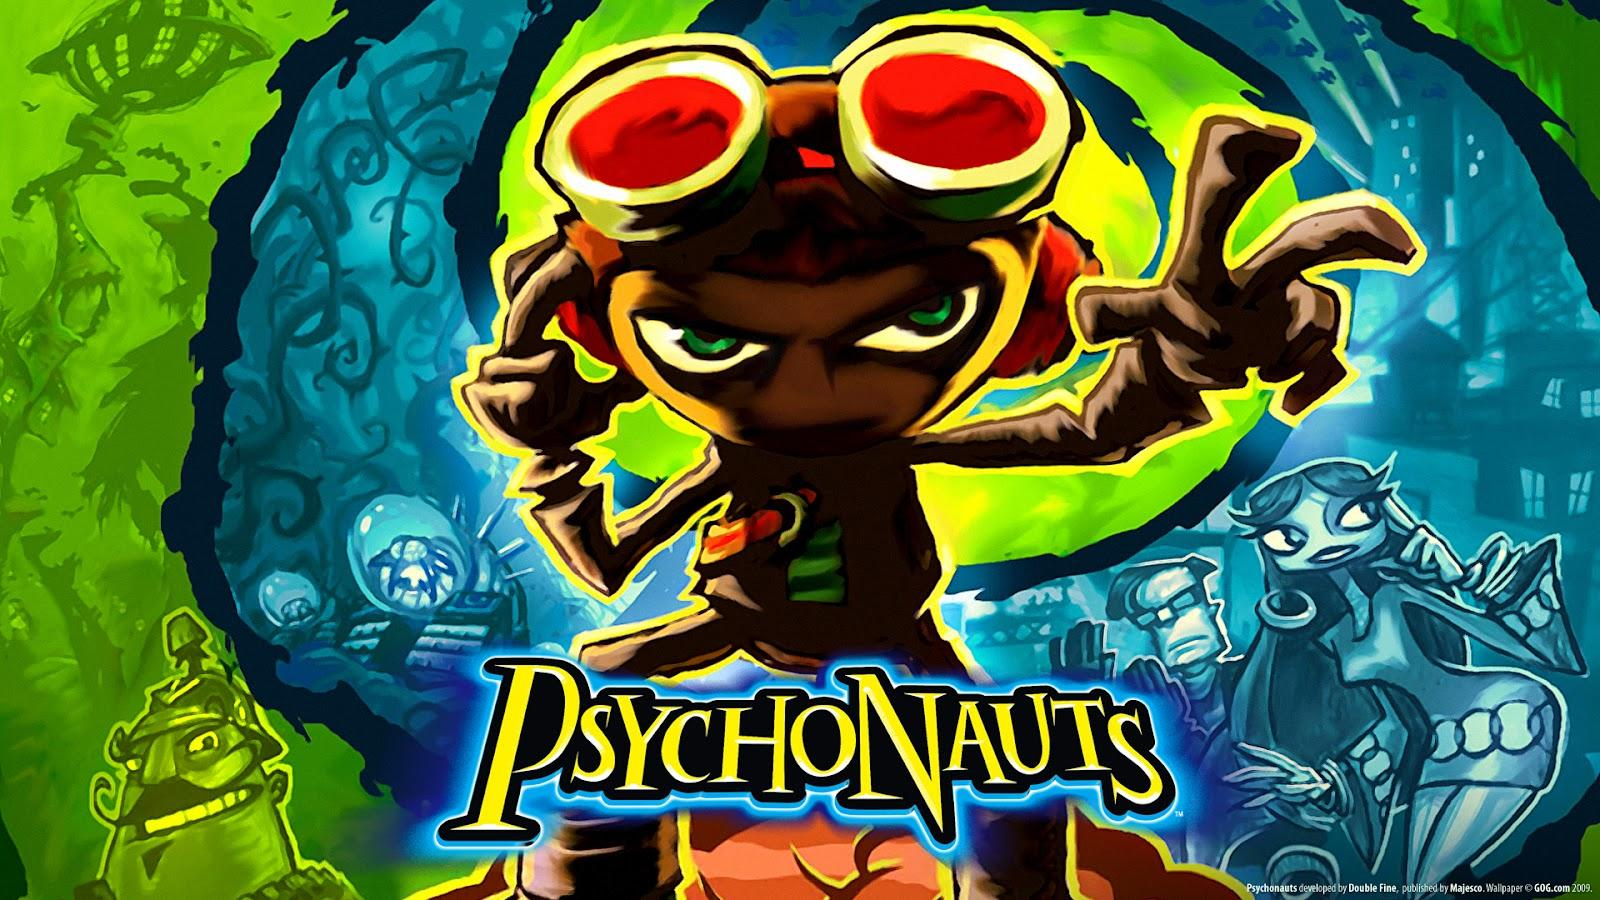 Psychonauts, Costume Quest, and Stacking Retail Bundle on.